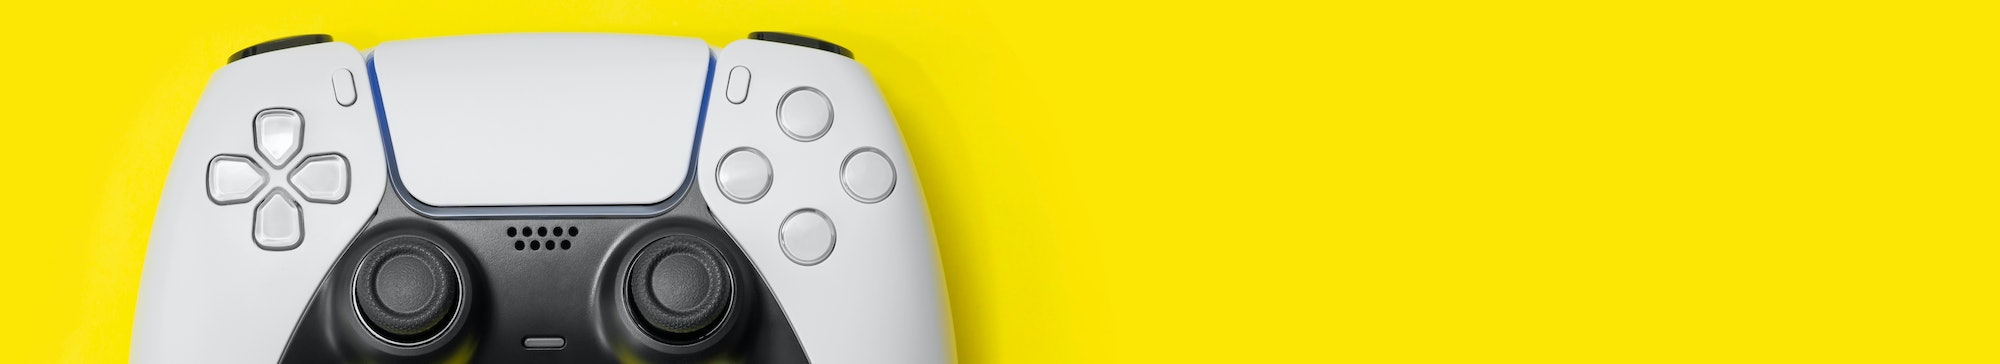 Next Gen game controller on yellow background